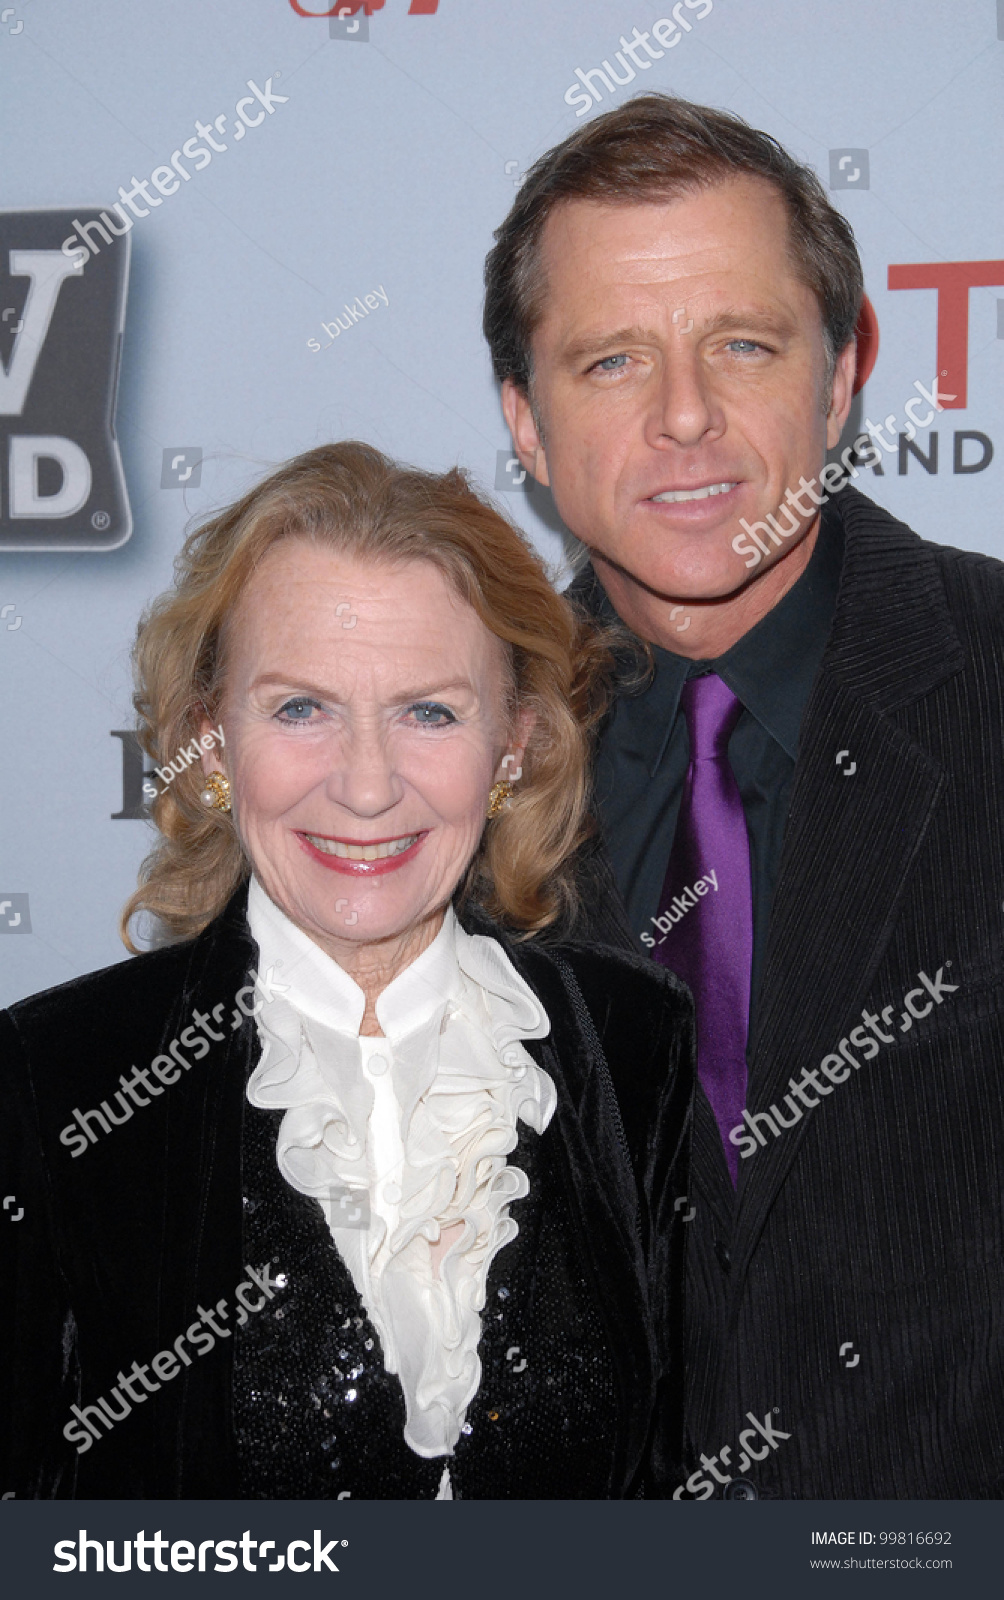 Forum on this topic: Briony Behets, juliet-mills/